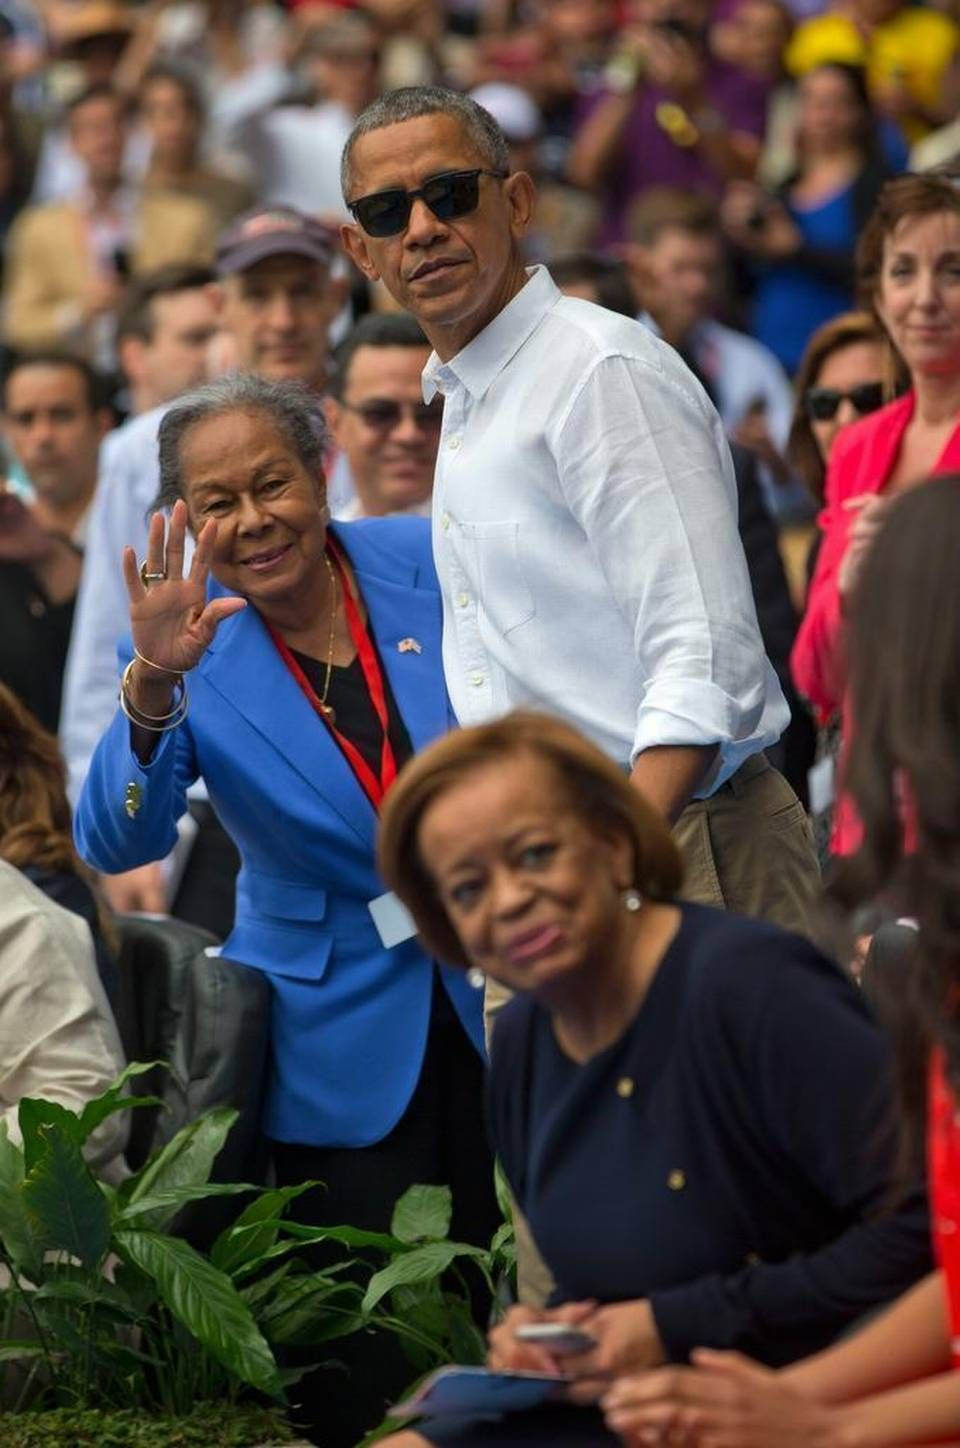 Tampa Bay Rays beat Cuba, 4-1, as Obama, Castro, the world watch history in Havana